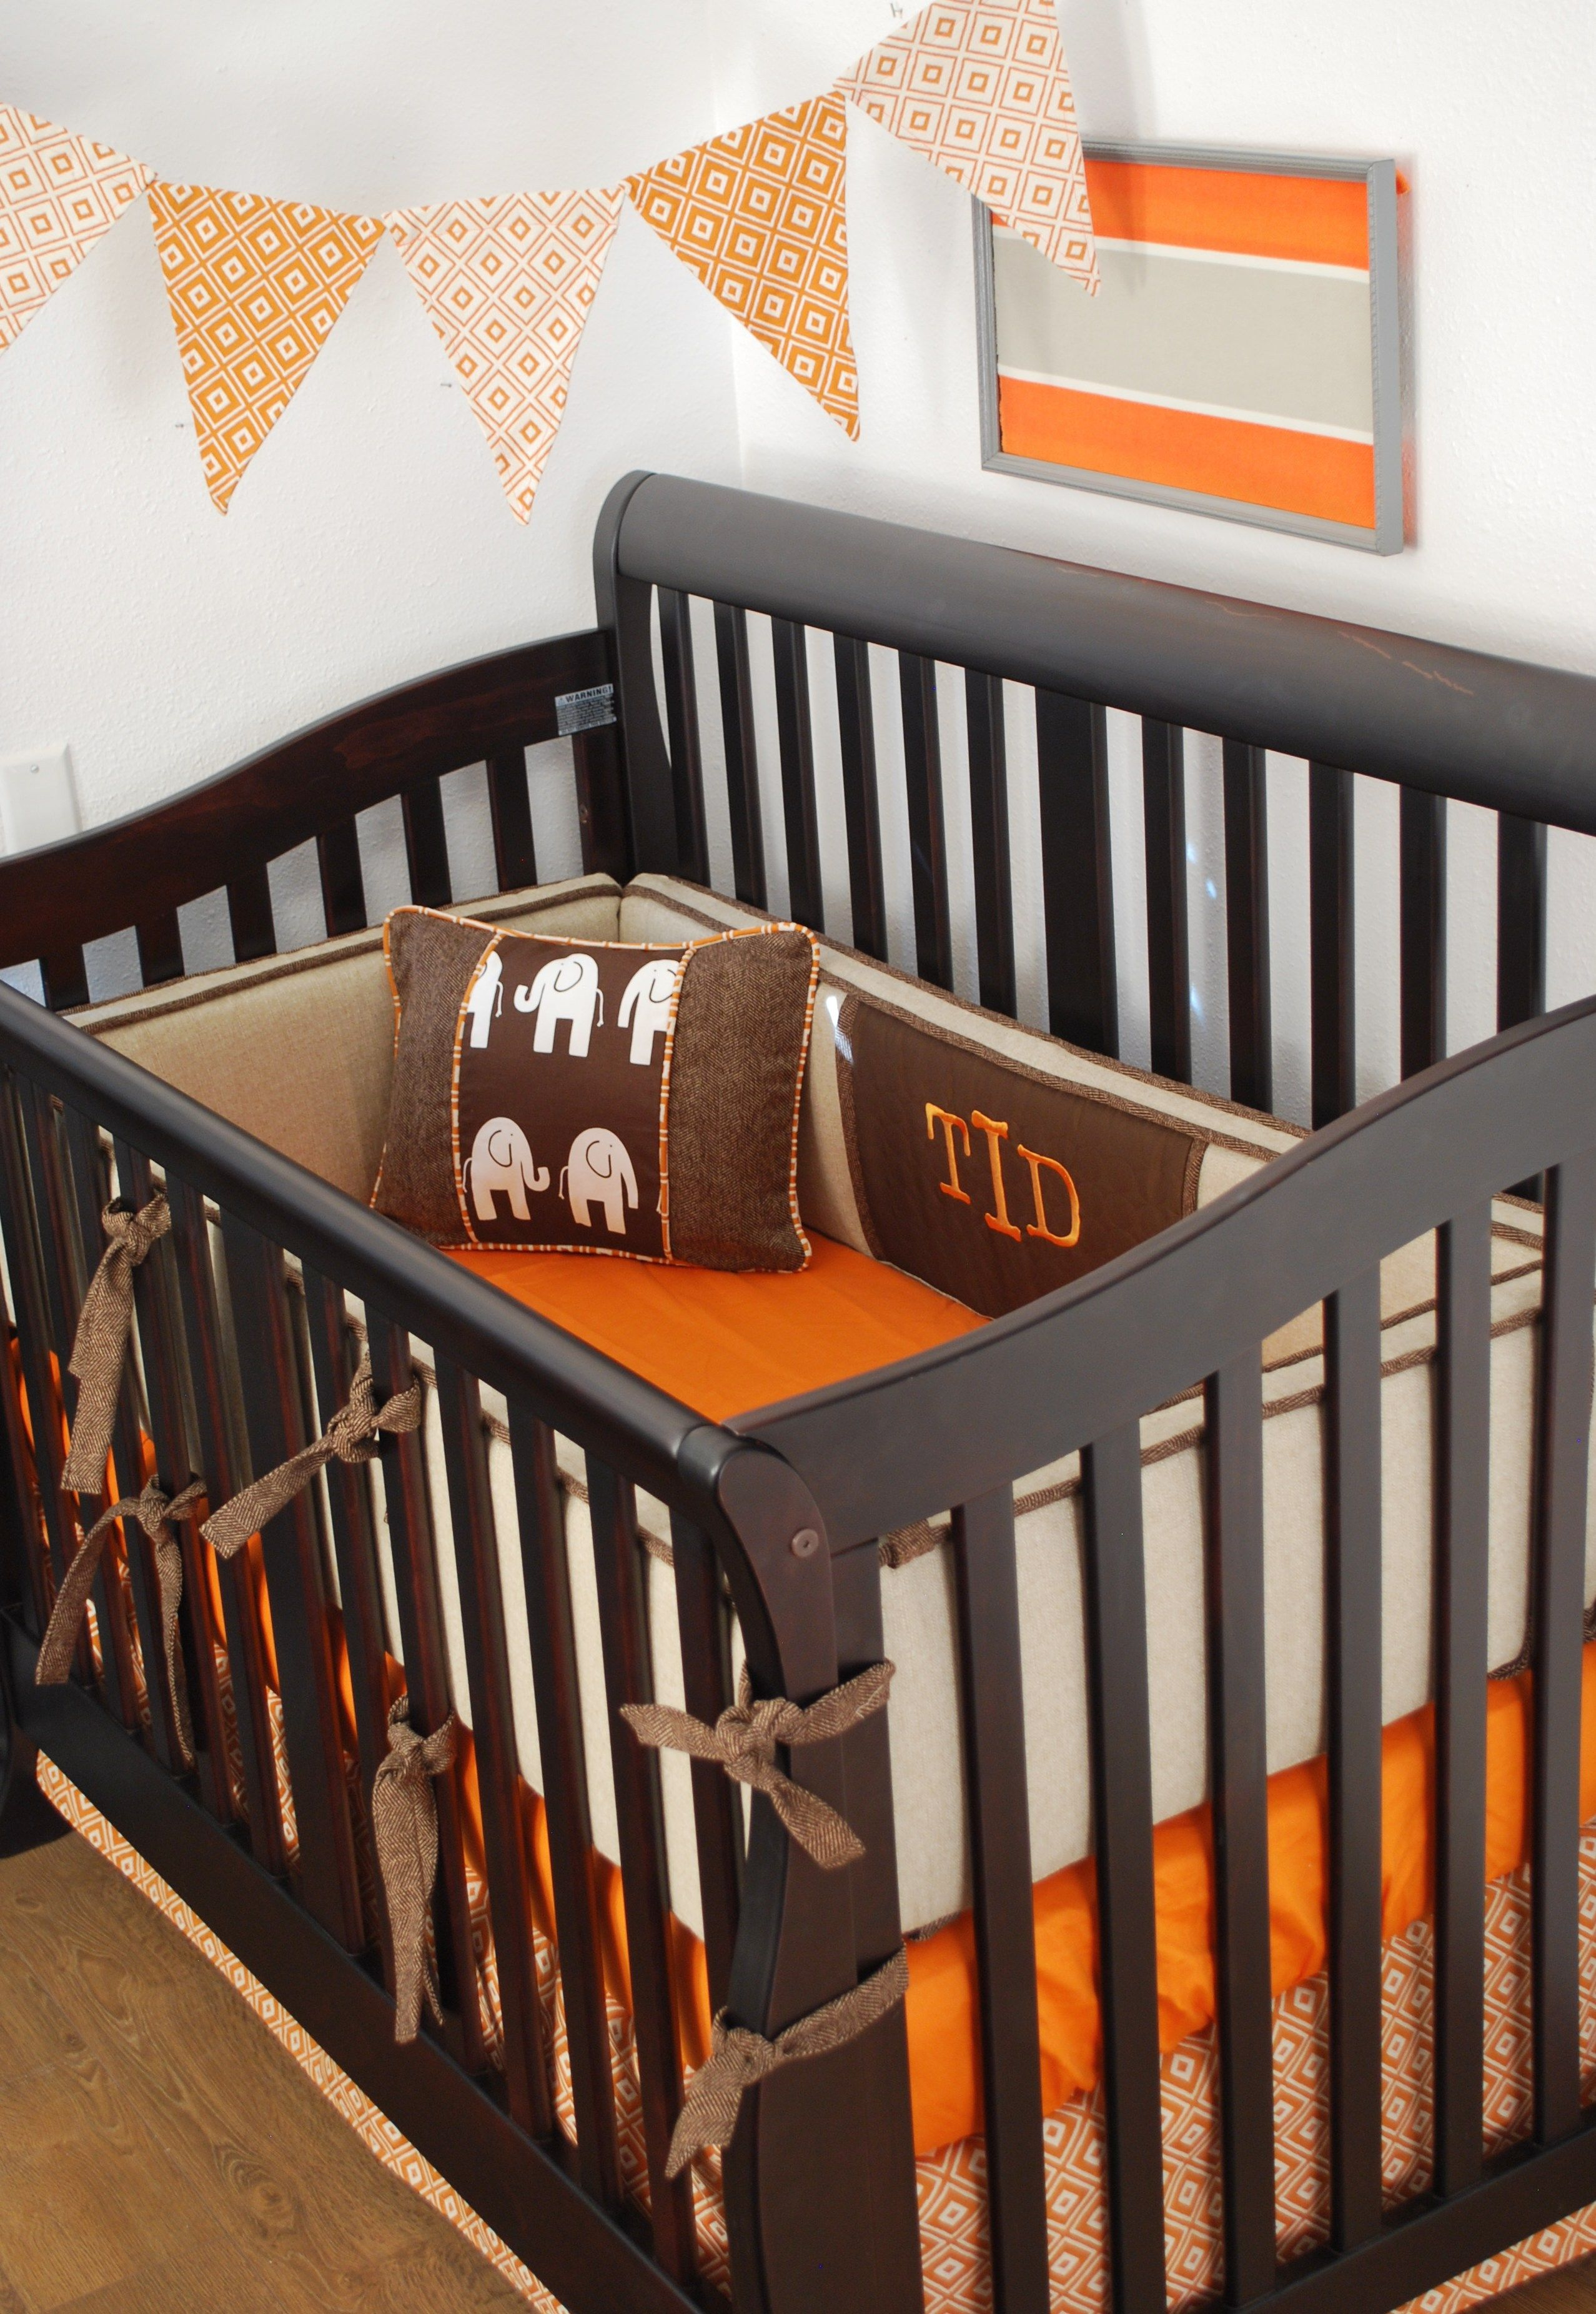 Rustic Crib Bedding With Burlap And Brown Fabrics And